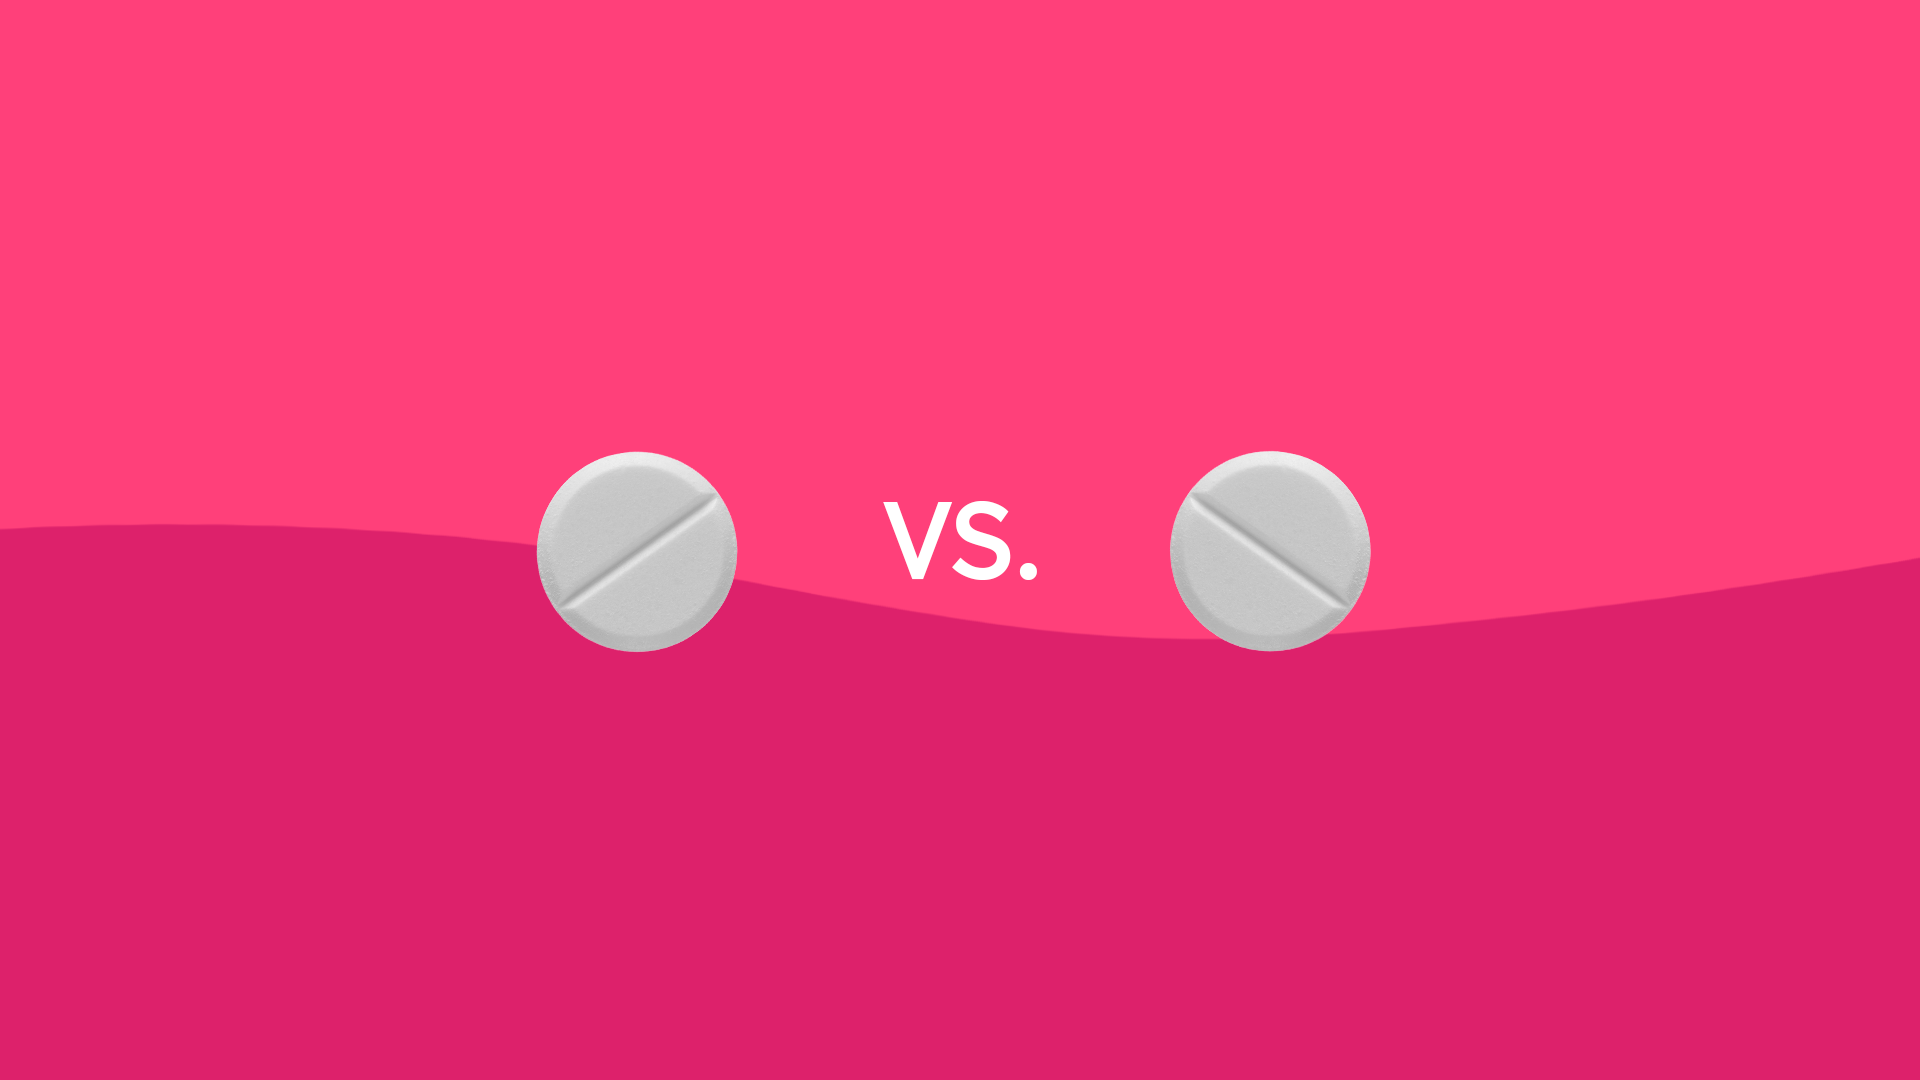 Suboxone vs Methadone: Main Differences and Similarities